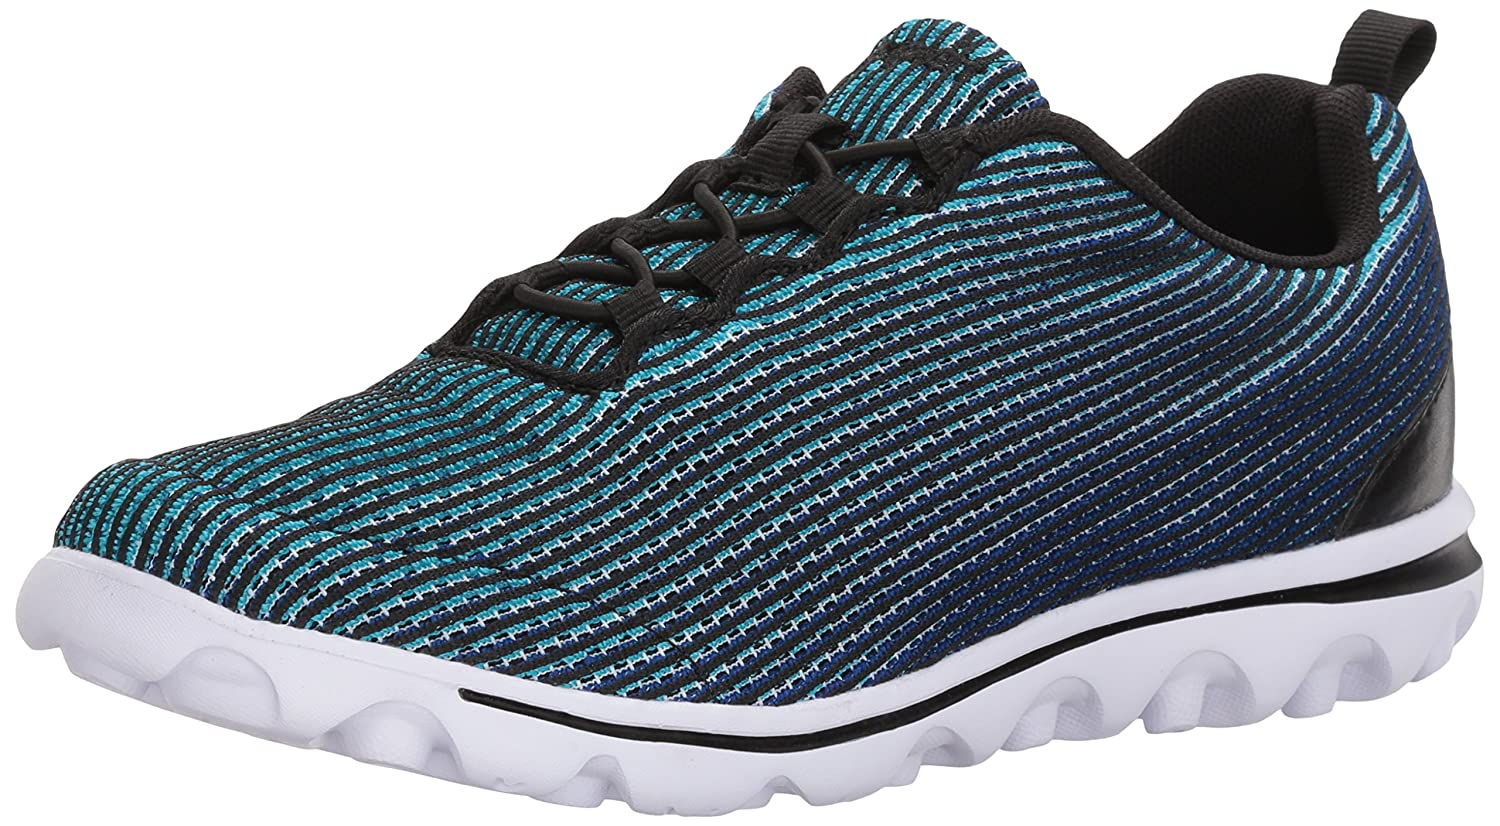 Propét Women's TravelActiv Xpress Sneaker B071JFSK93 8 4E US|Black/Blue